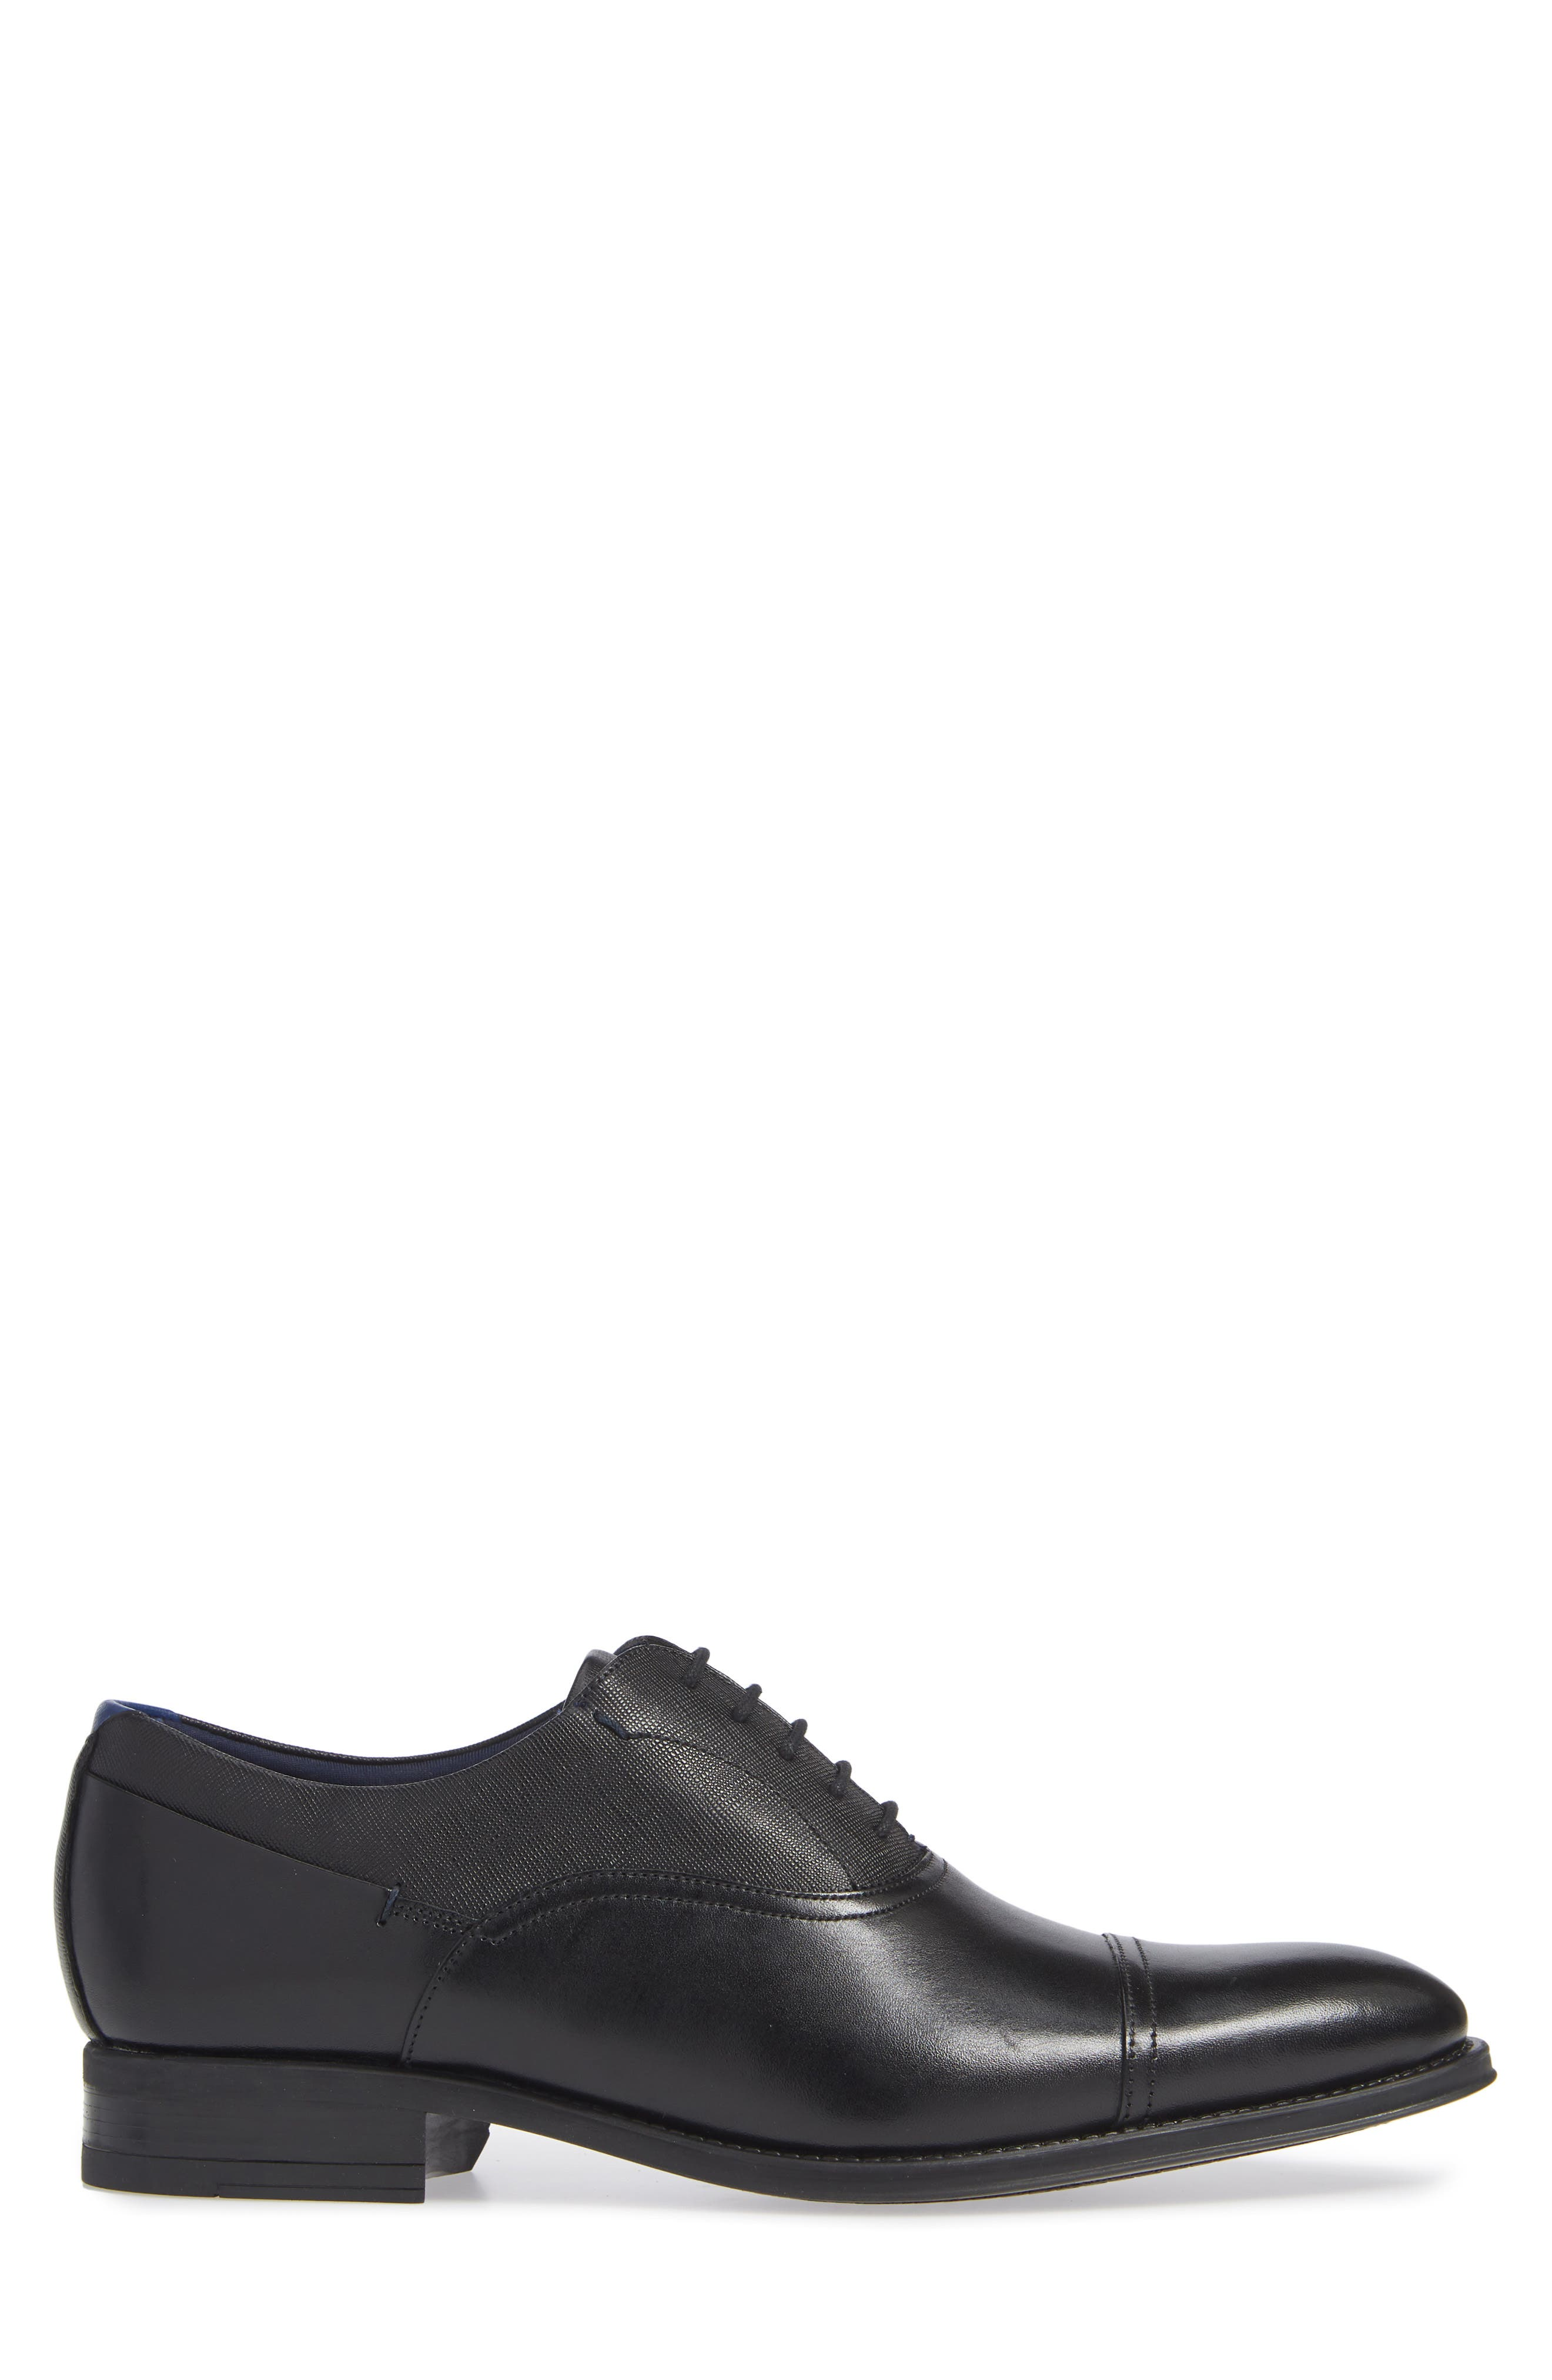 Fhares Cap Toe Oxford,                             Alternate thumbnail 3, color,                             BLACK